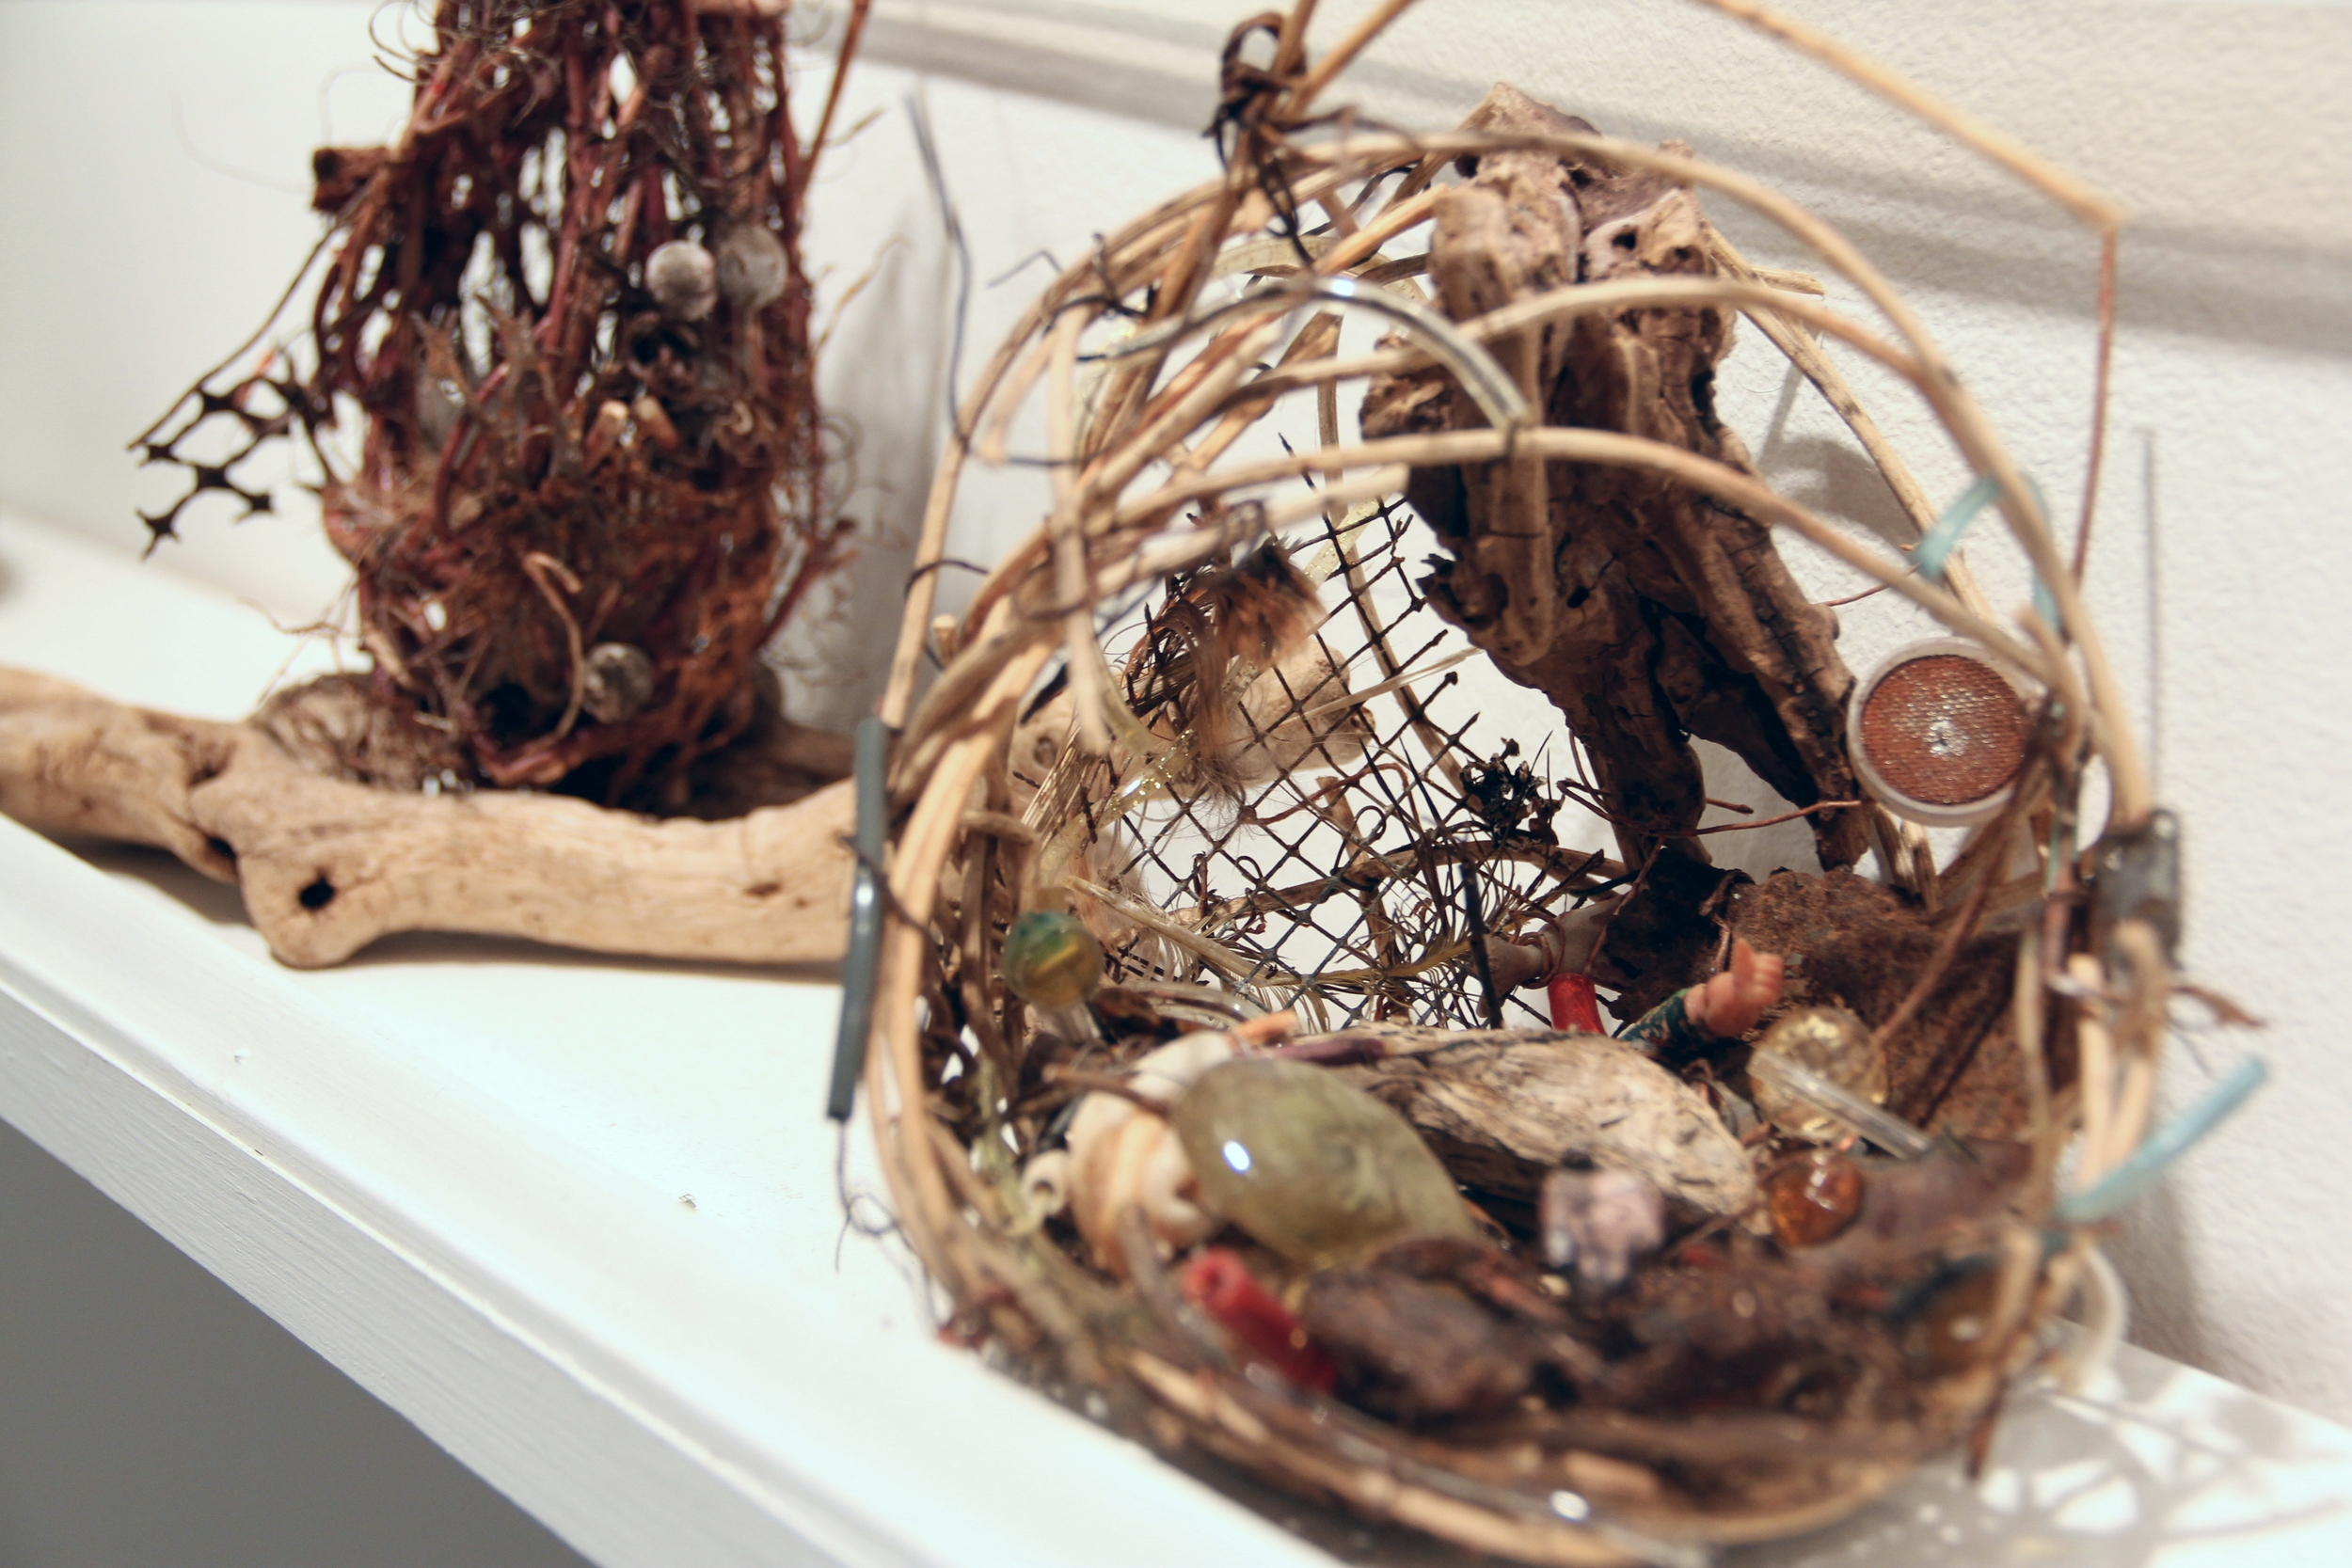 Detail of sculptural images by Kathy Dragomer.